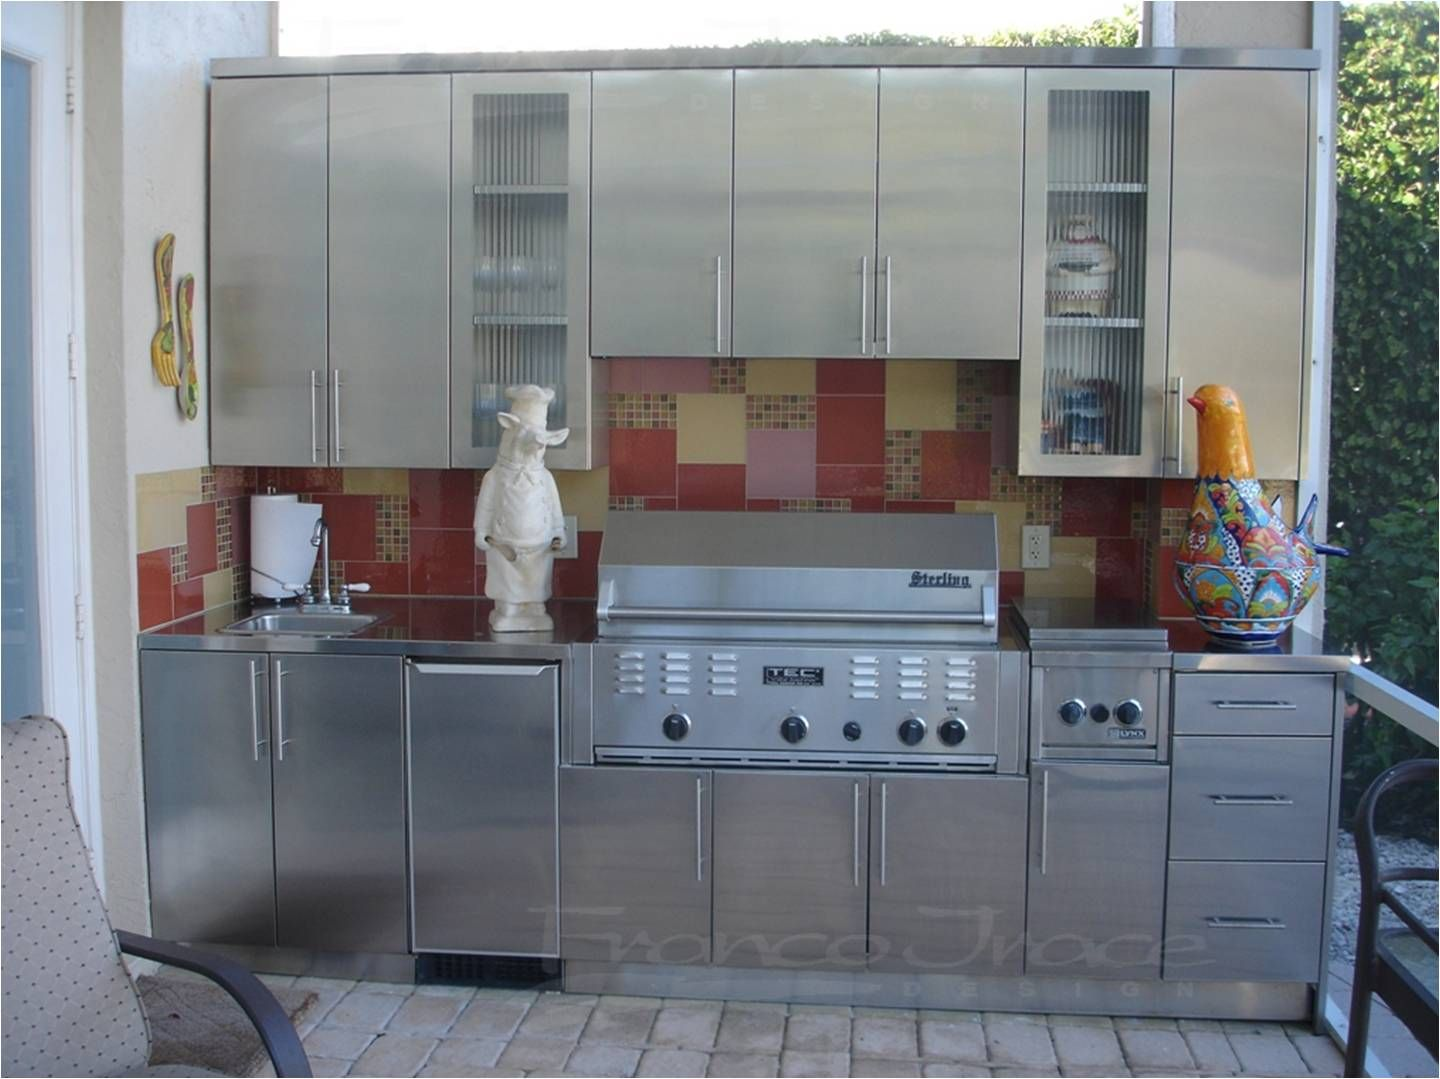 Contact Us Steel Kitchen Cabinets Stainless Steel Kitchen Cabinets Outdoor Kitchen Cabinets